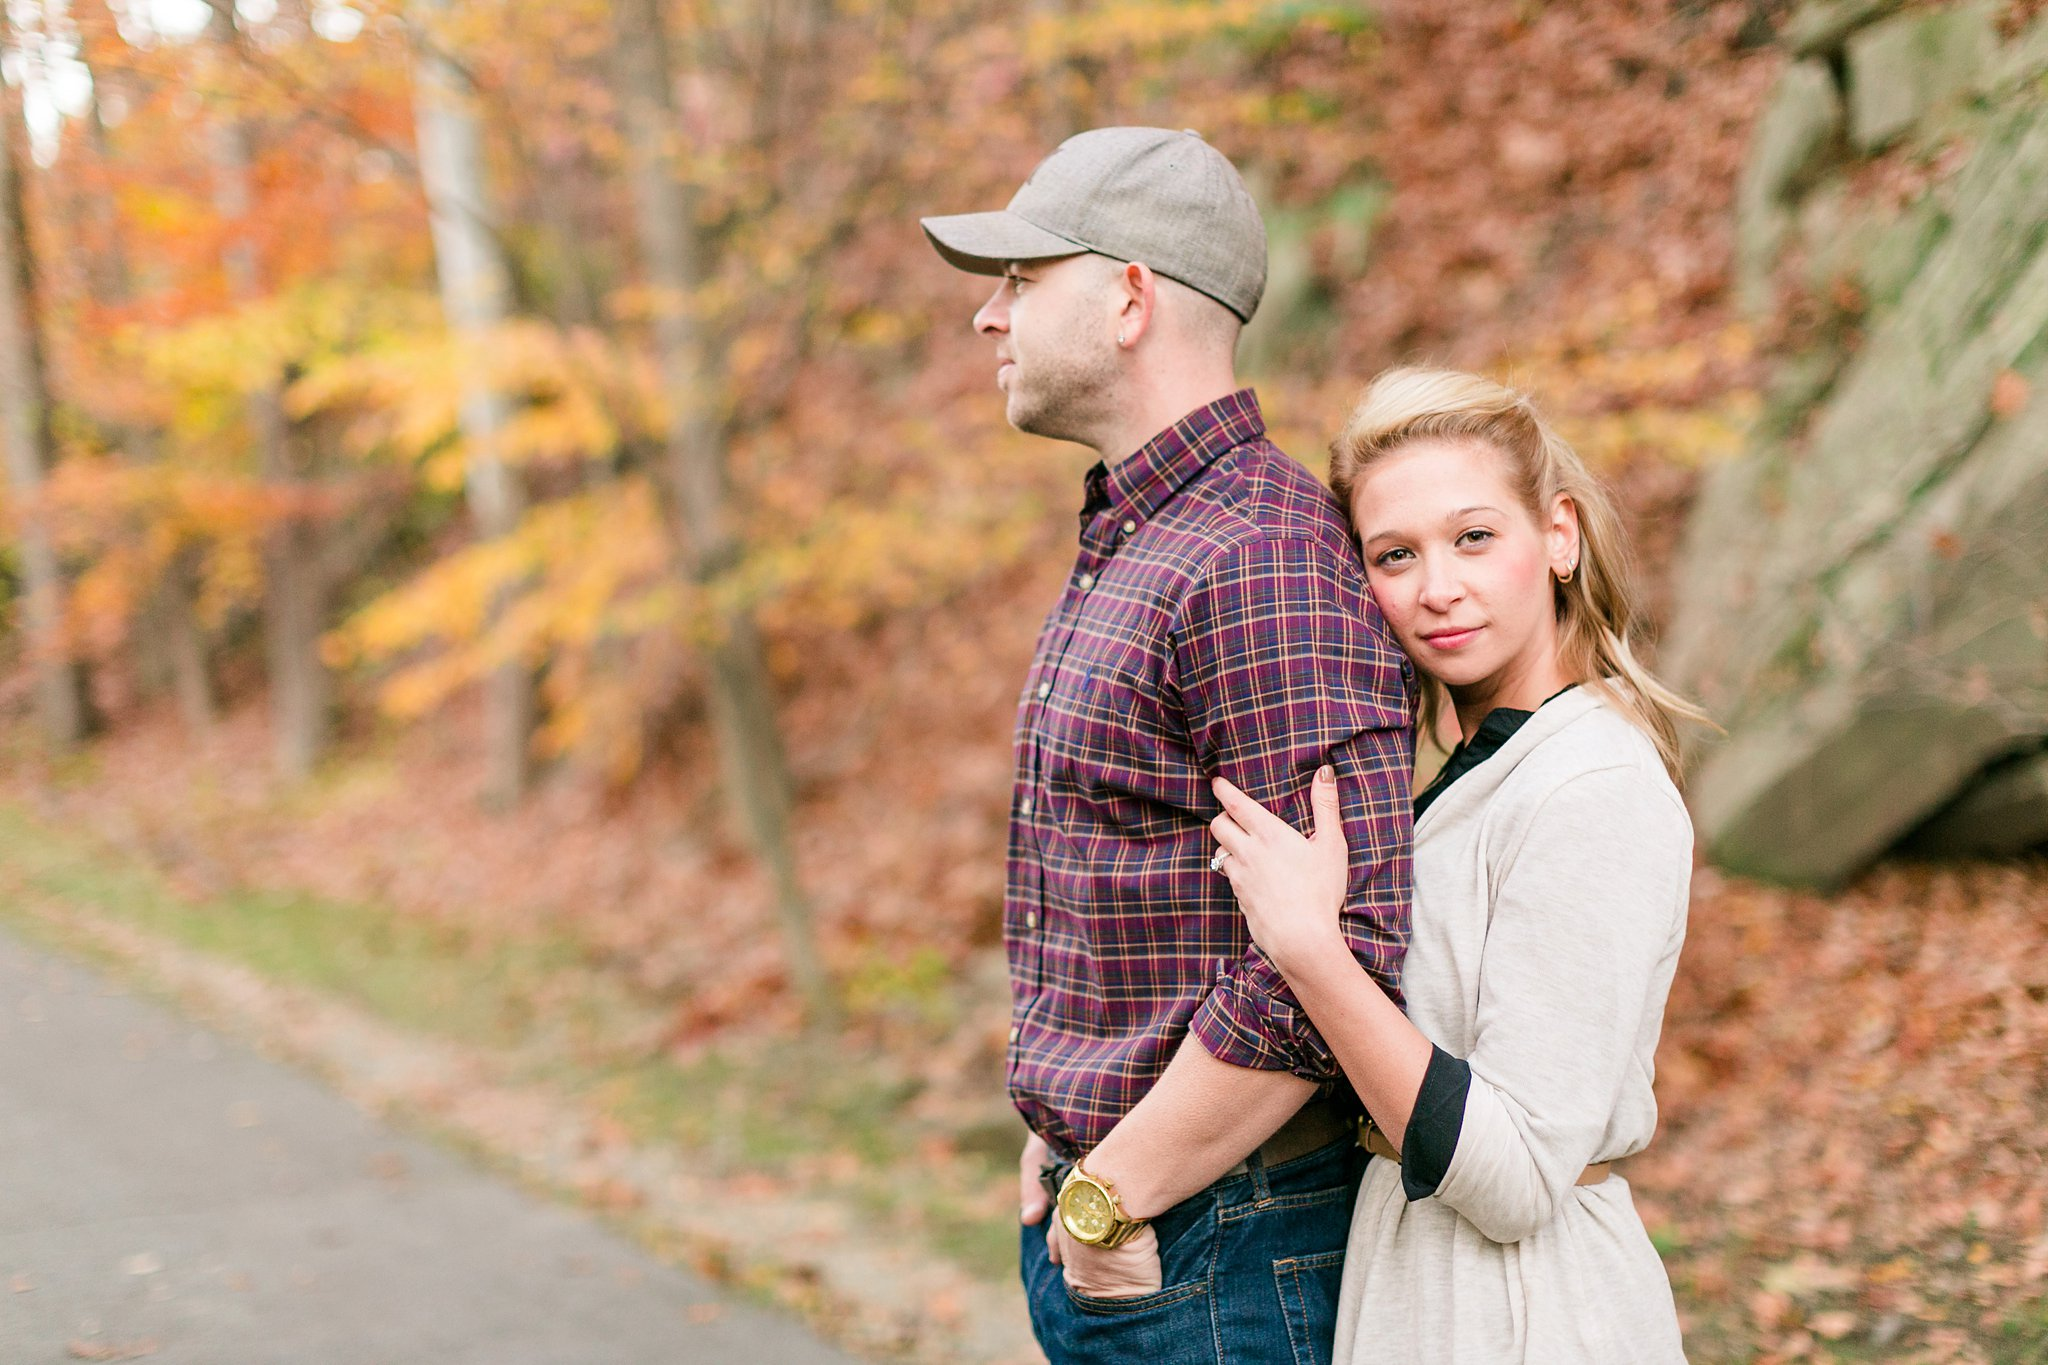 Rock Creek Park Engagement Photos DC Wedding Photographer Megan Kelsey Photography Katie & Conor-178.jpg